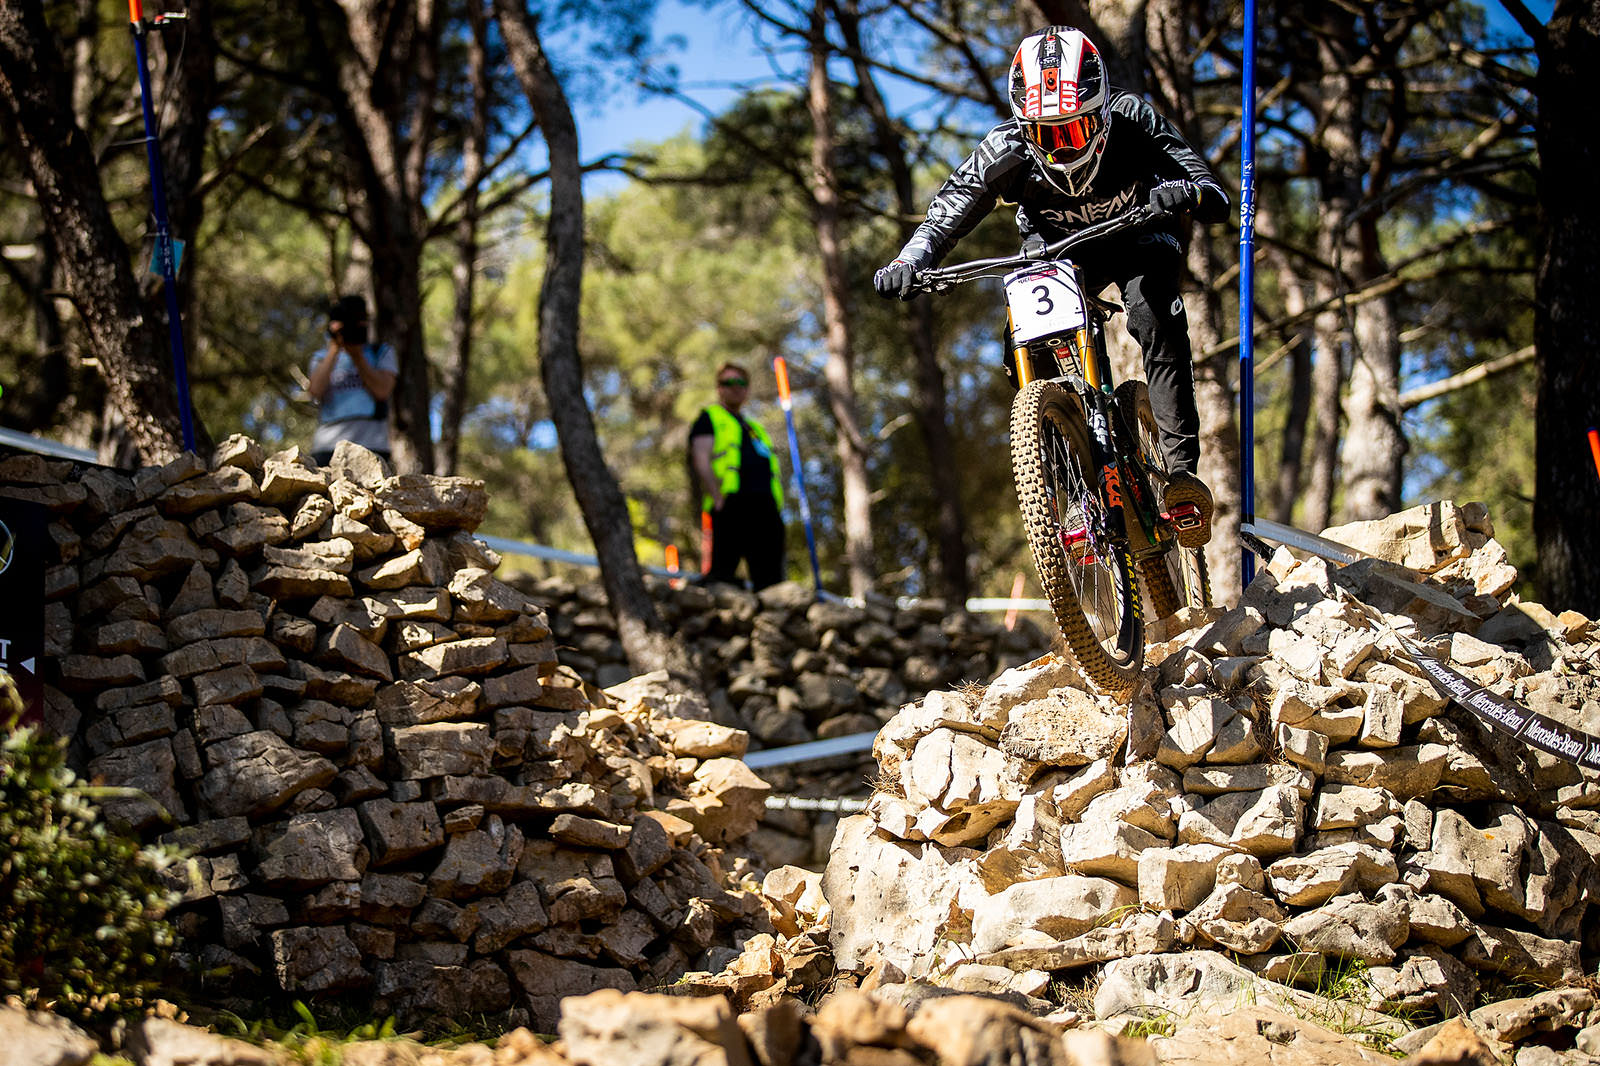 Santa Cruz Bicycles - Greg Minnaar Rolling Rocks at the Losinj World Cup DH